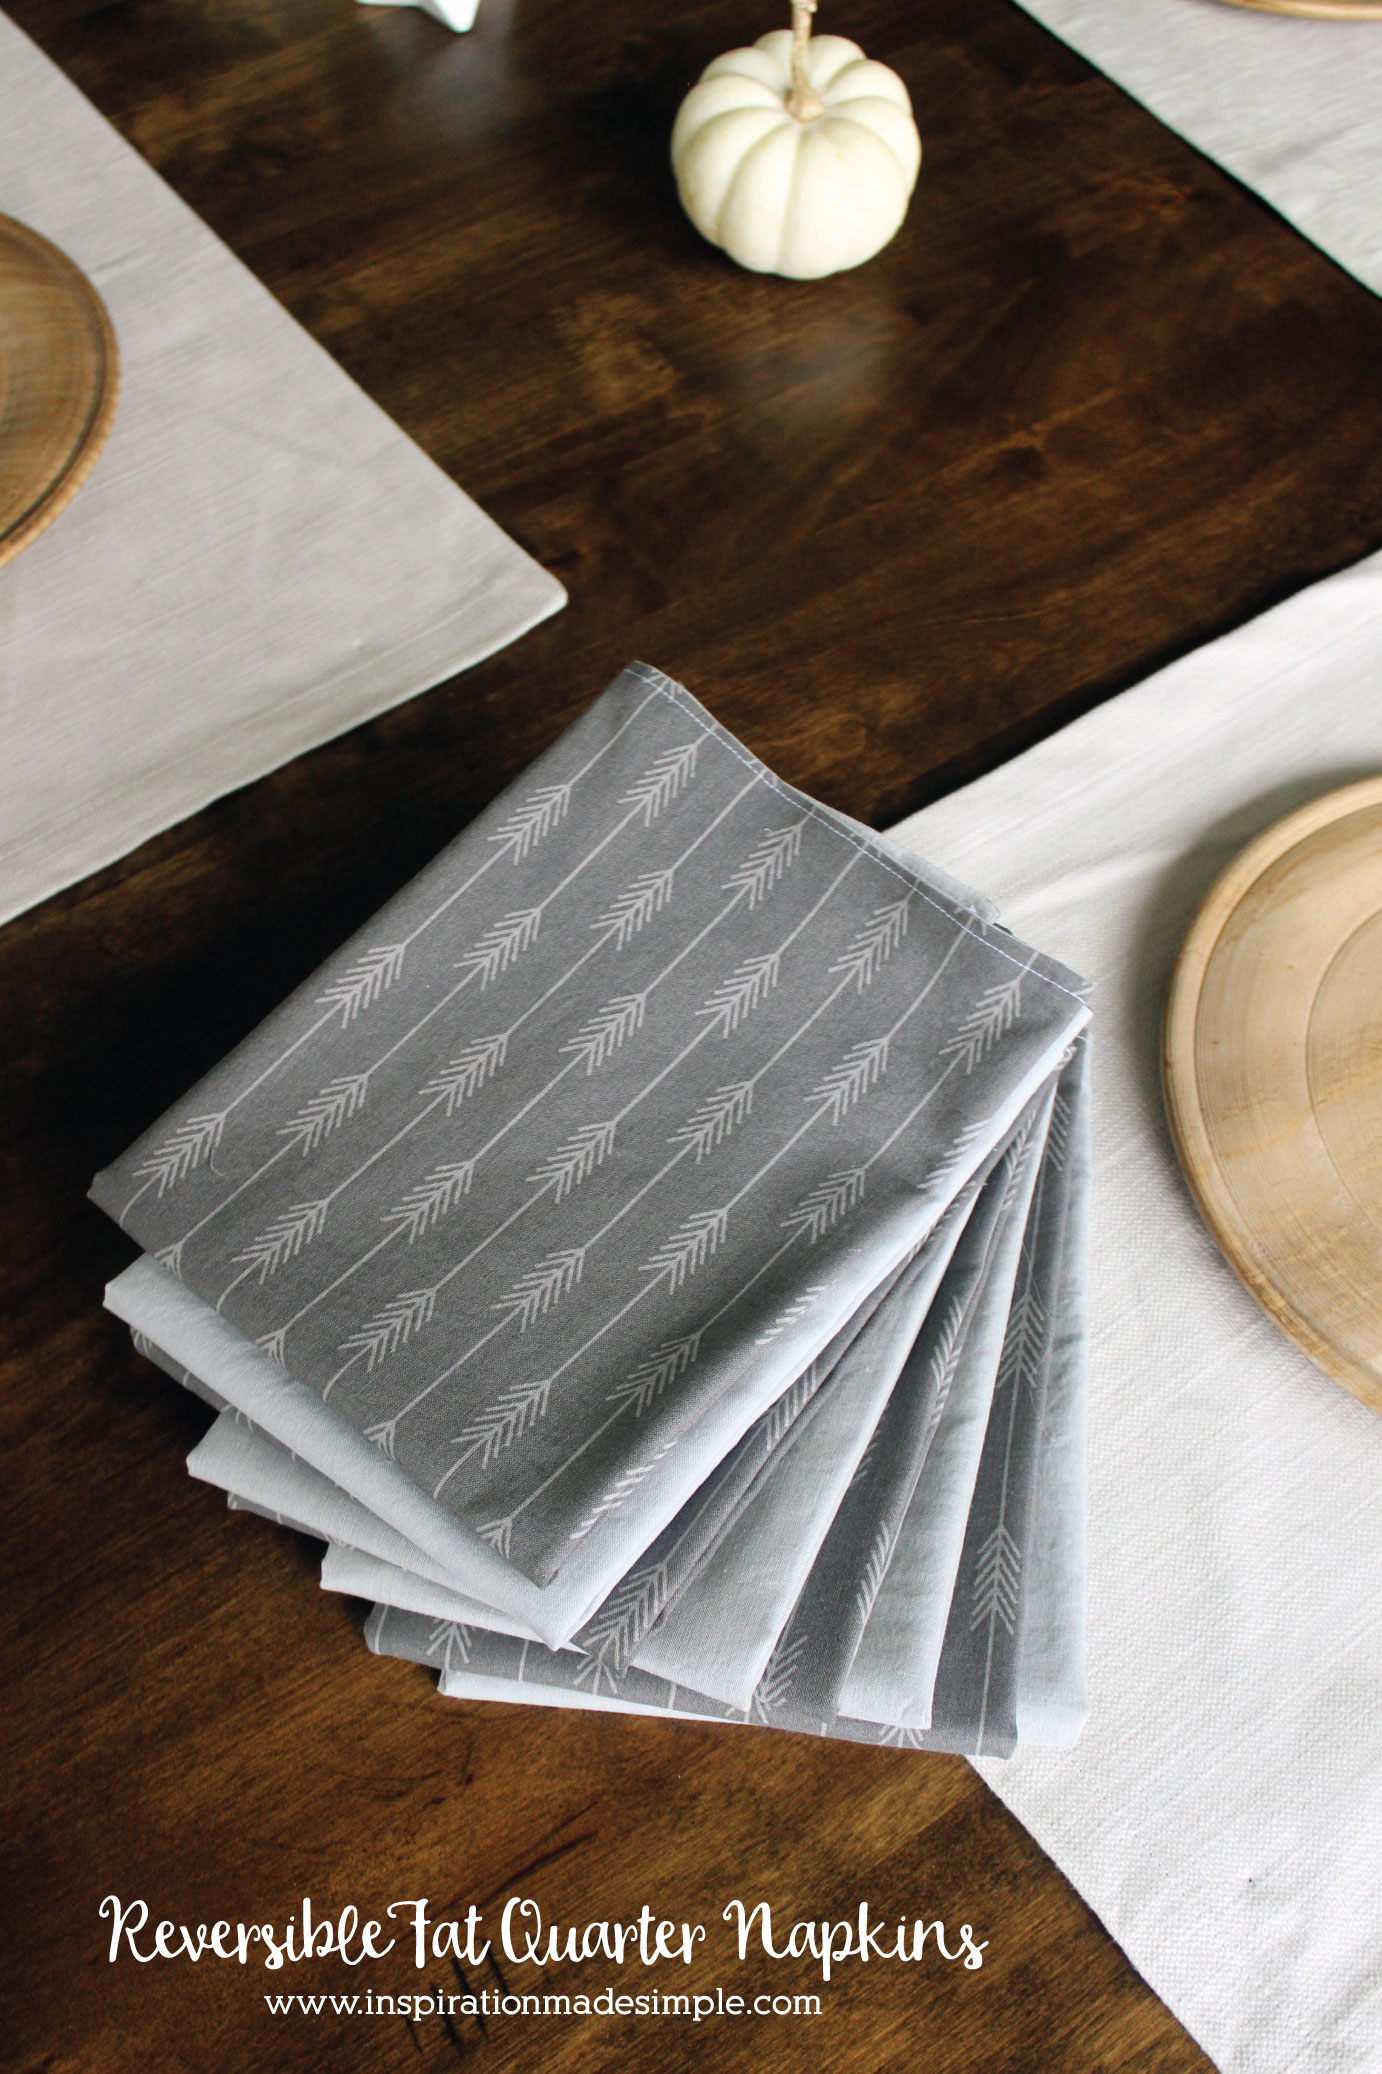 Reversible Fat Quarter Napkins Tutorial